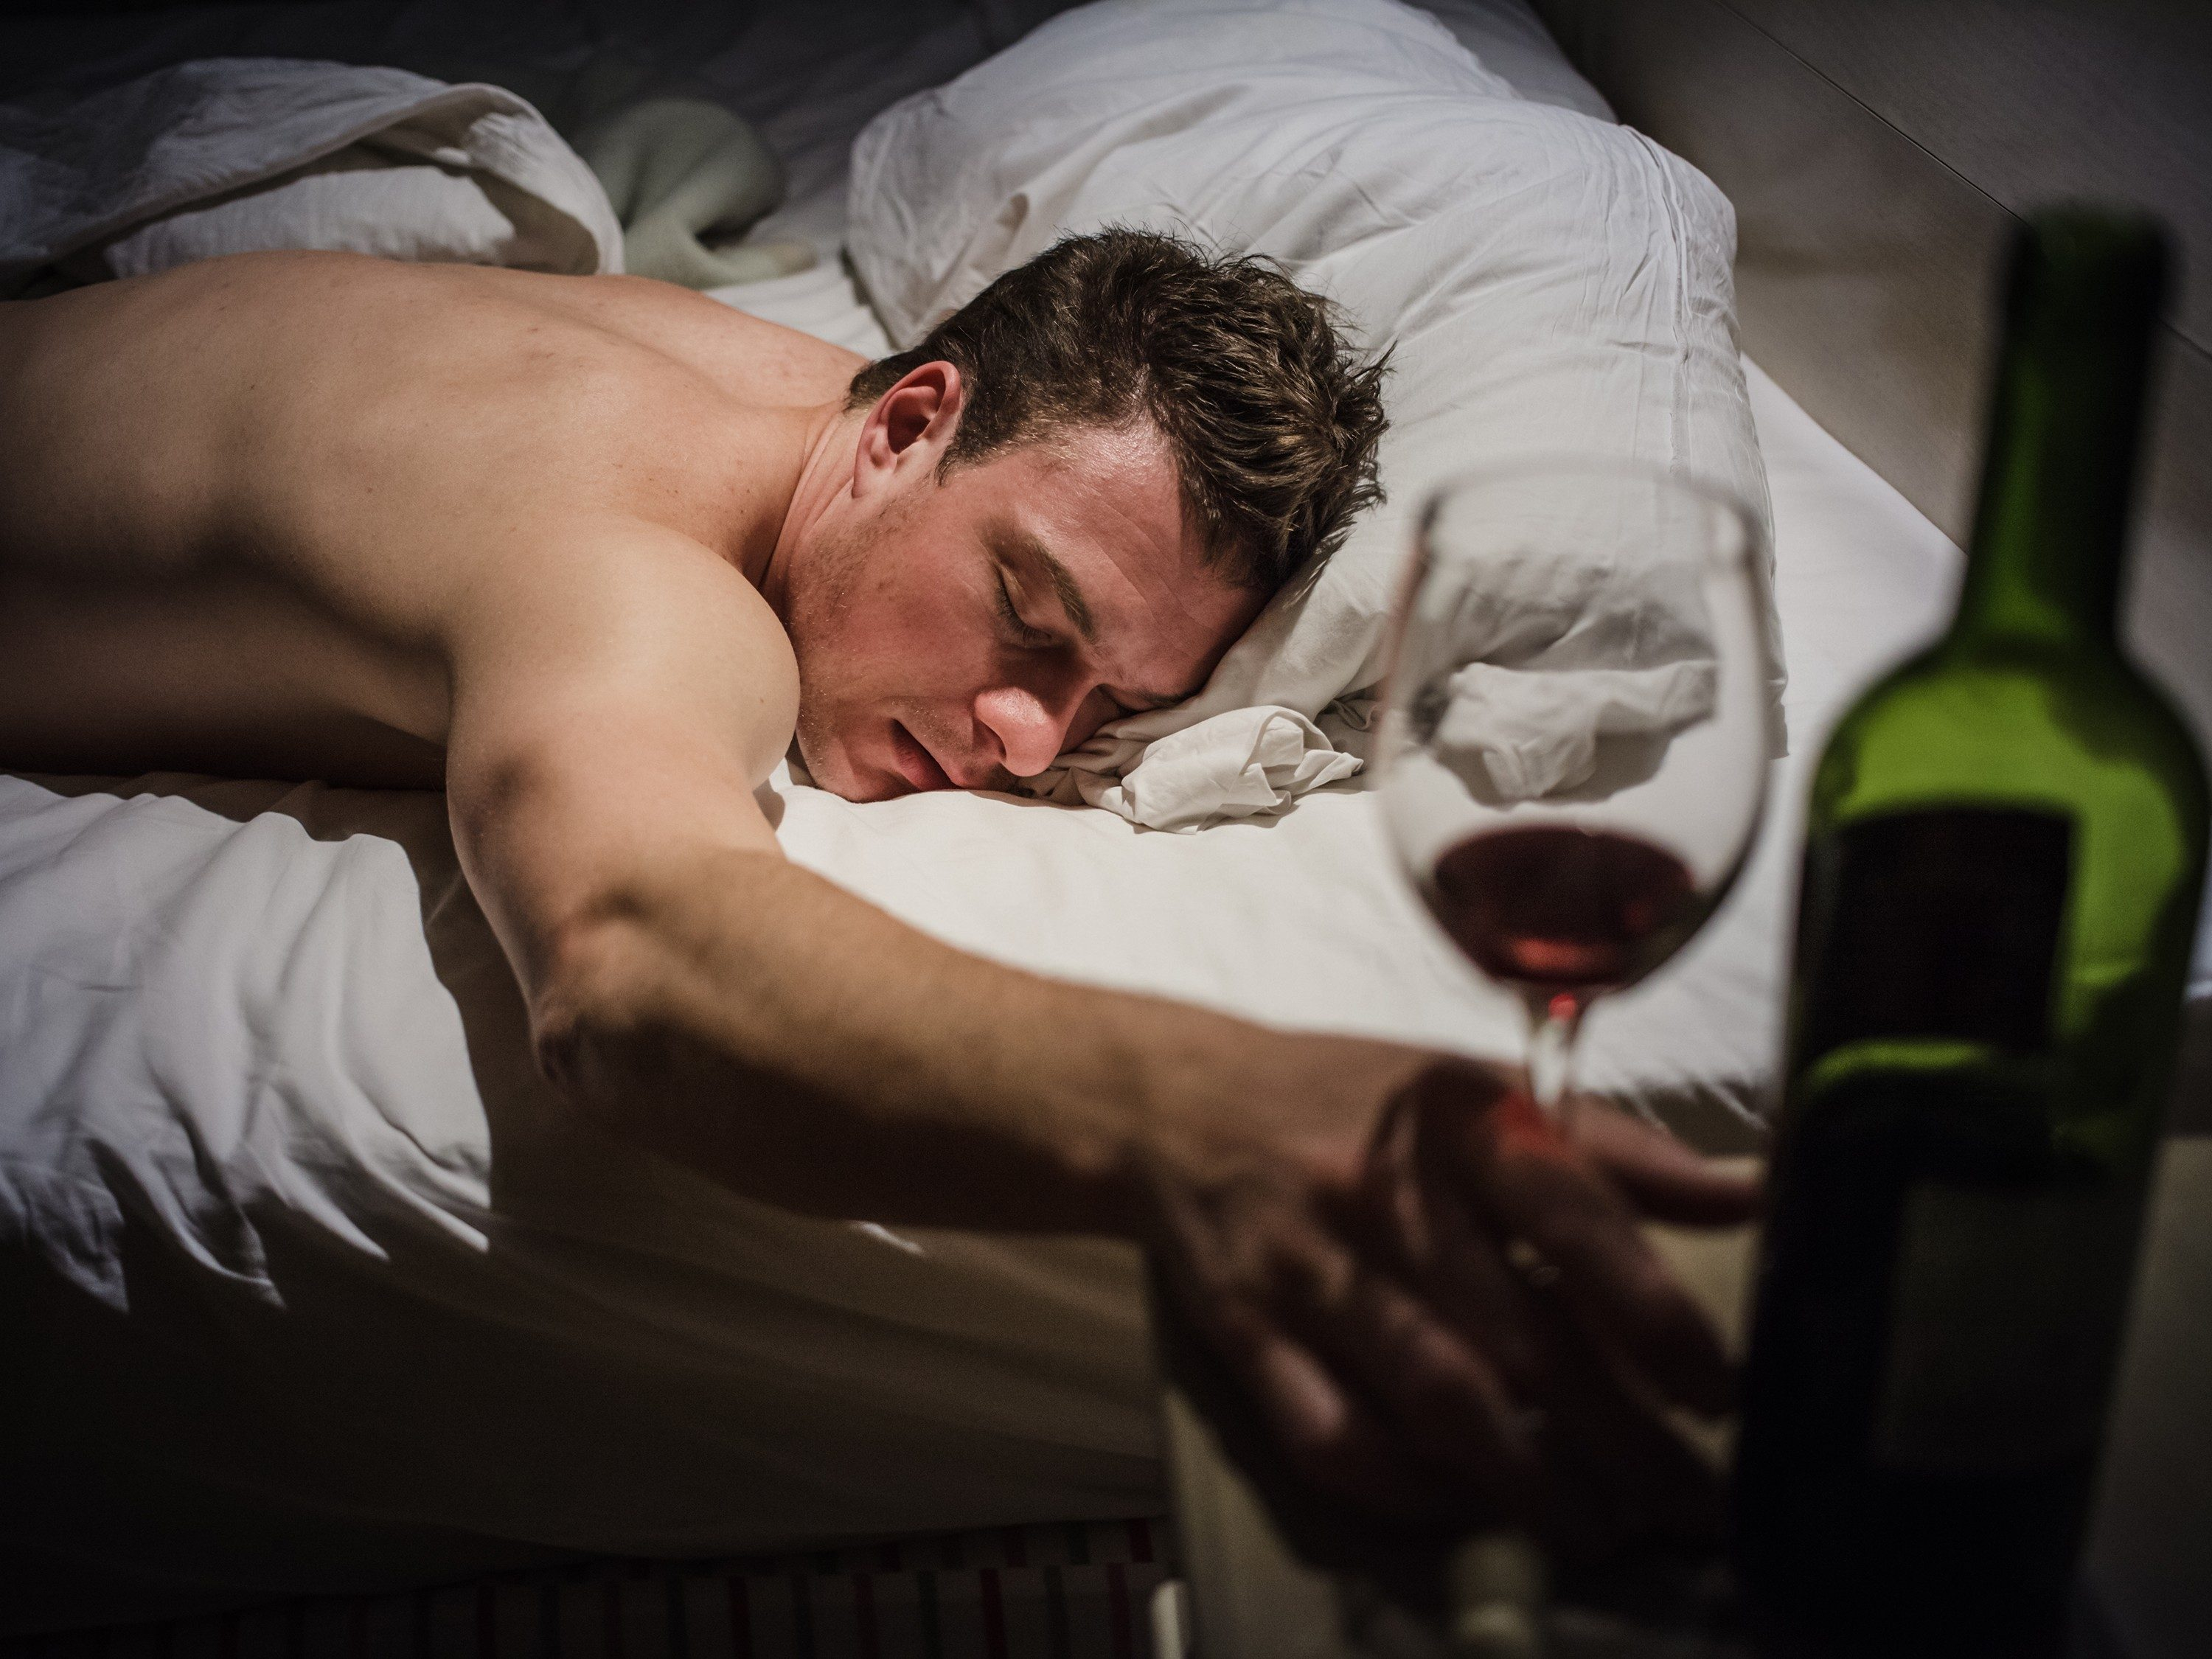 4. Avoid Alcohol Close to Bedtime